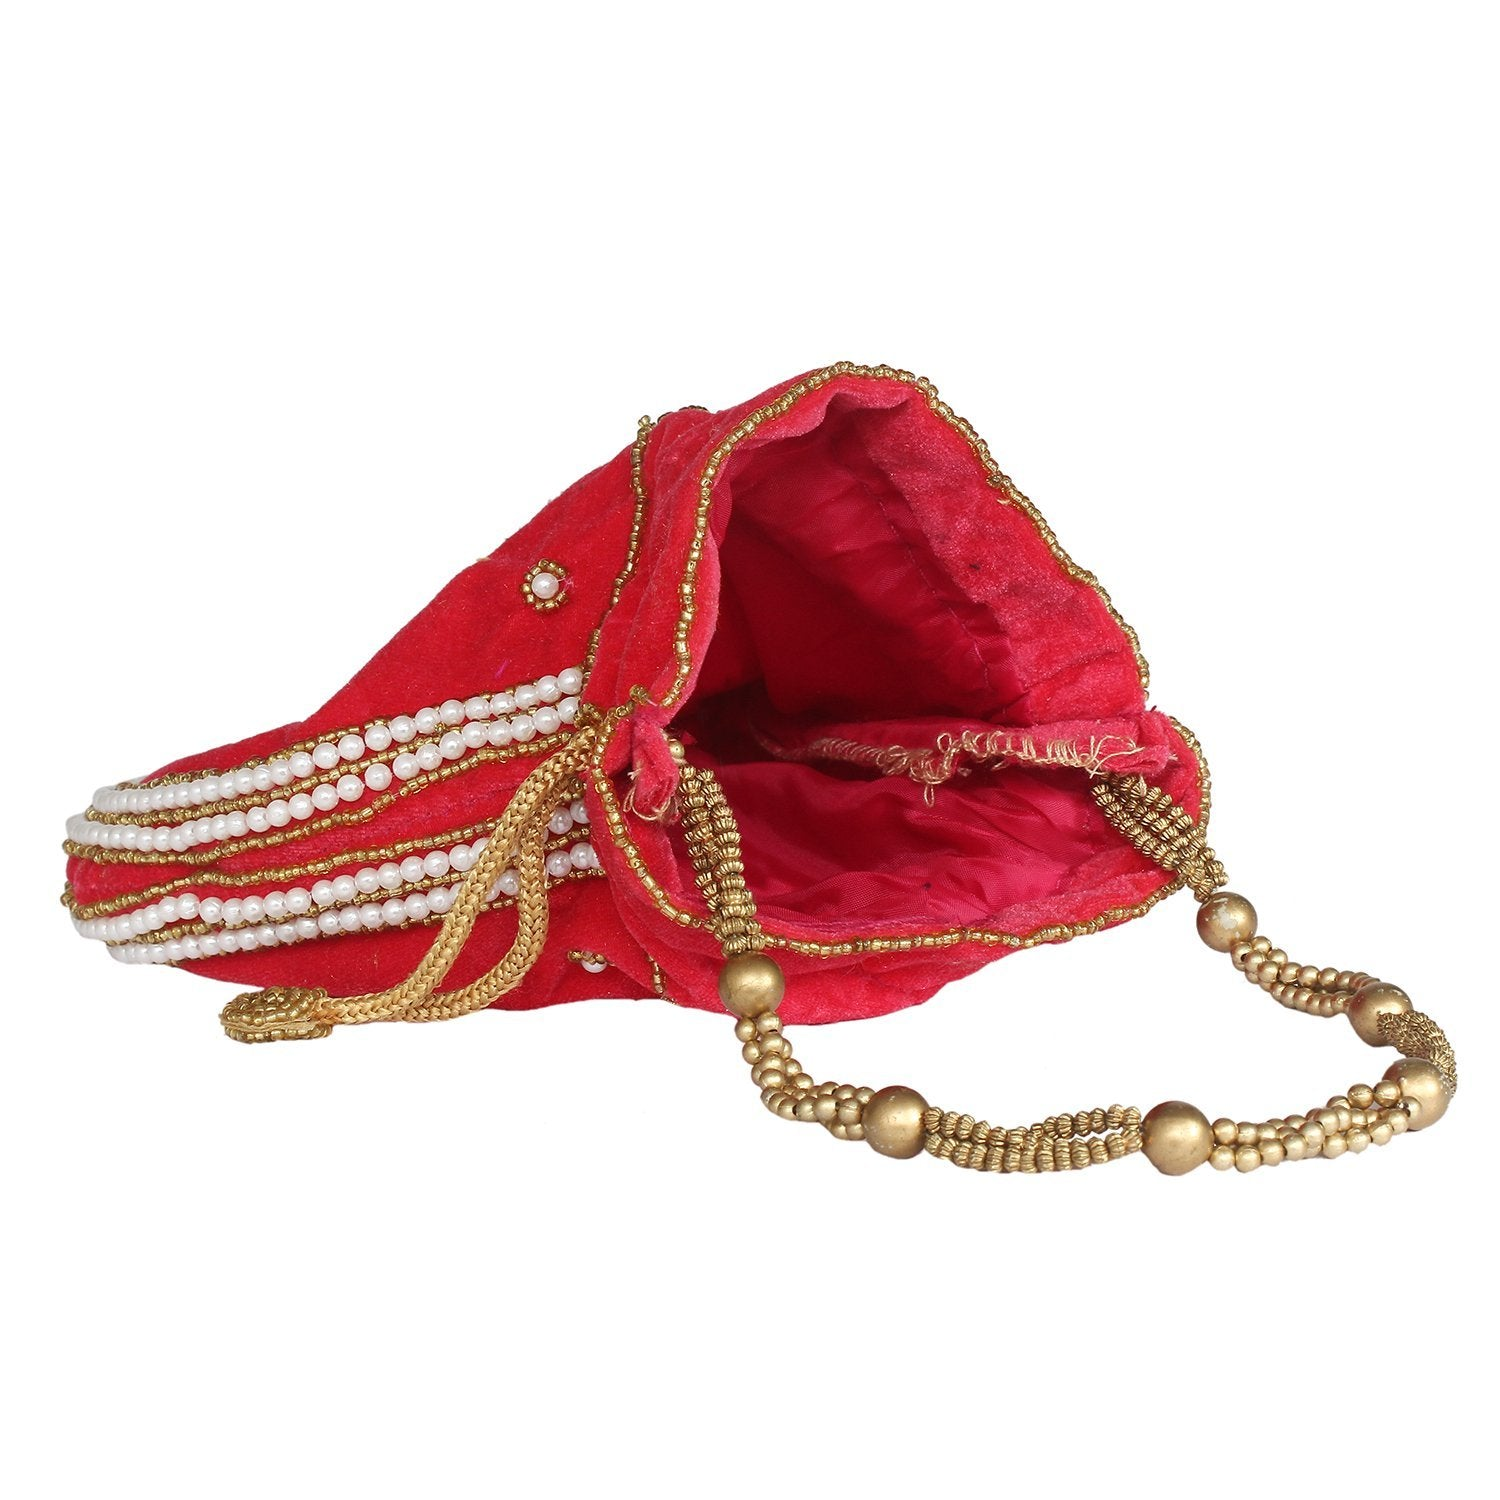 Ethnic Beads and Pearls Velvet Potli Bag Batwa Pouch - Bagaholics Gift